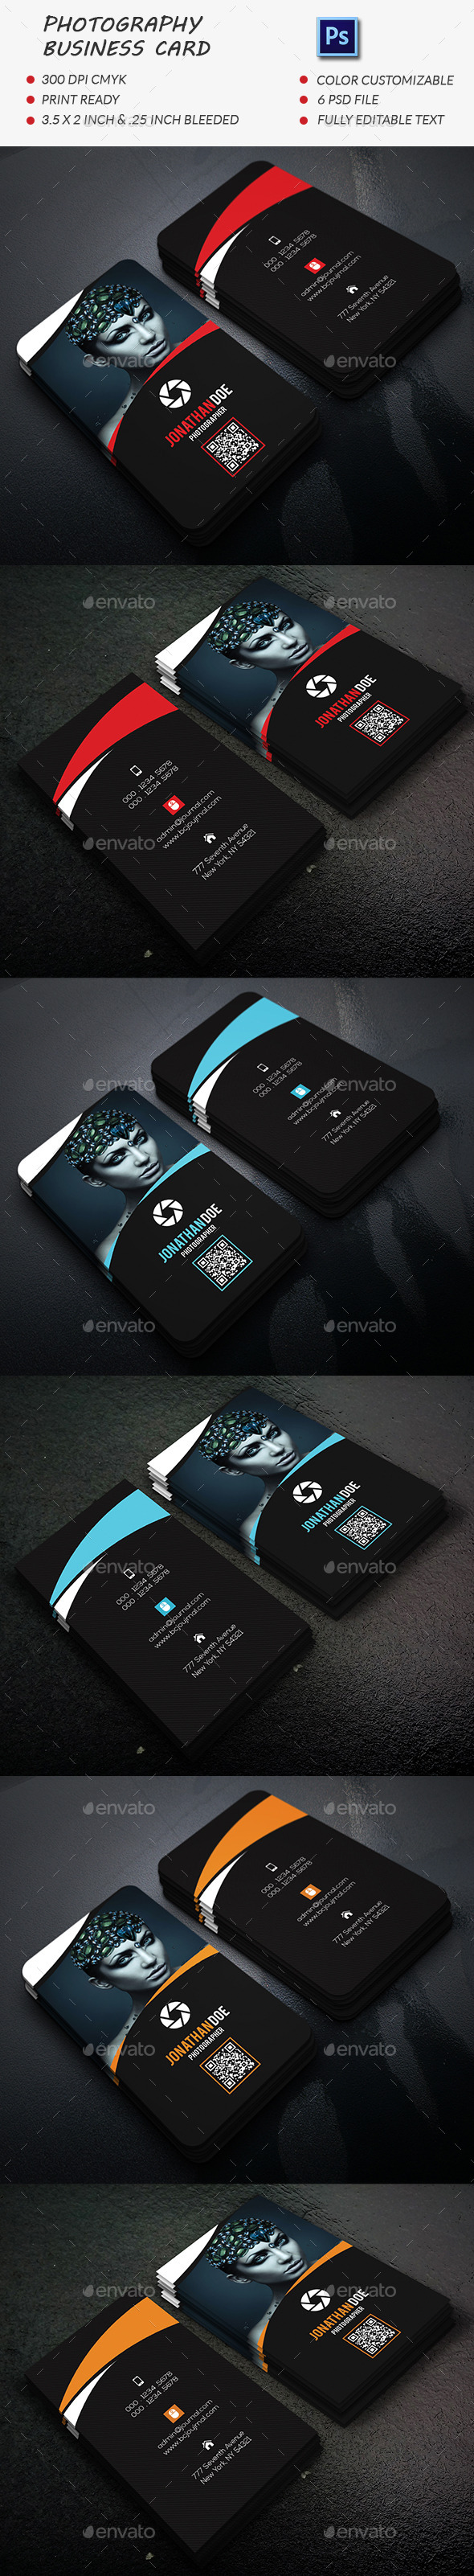 GraphicRiver Photography Business Card Template 11828888